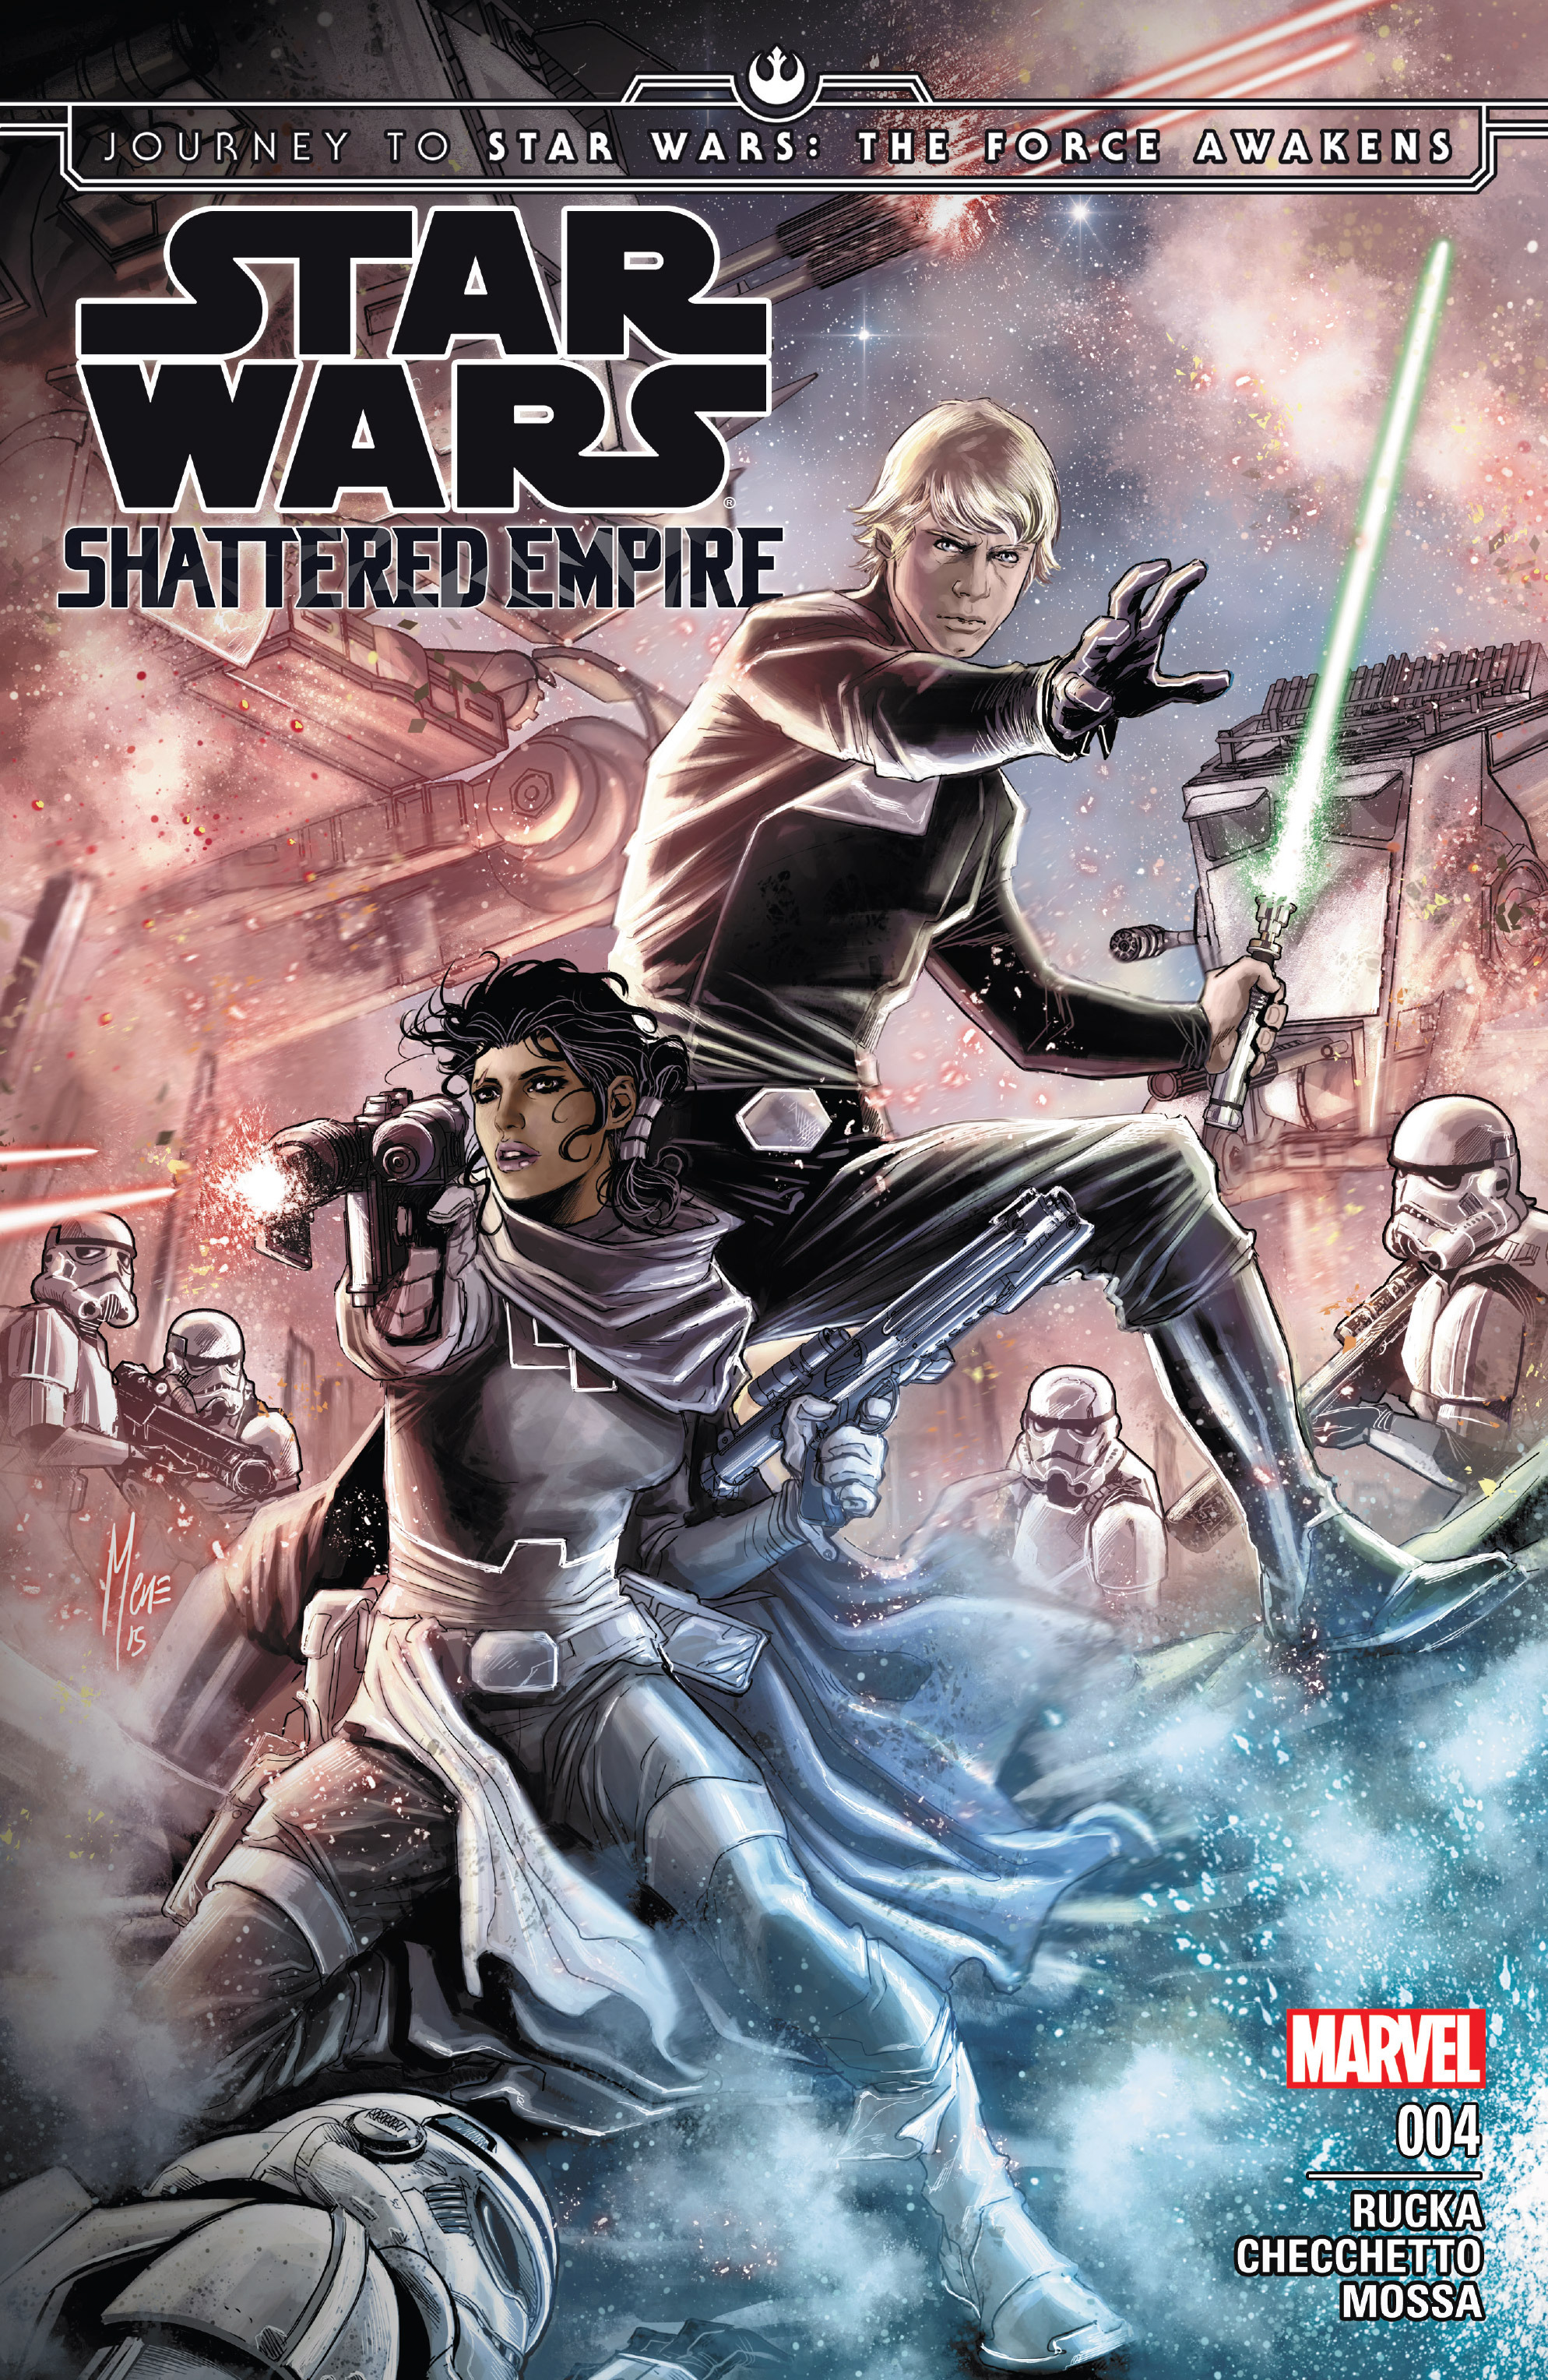 Journey to Star Wars: The Force Awakens - Shattered Empire 4 Page 1